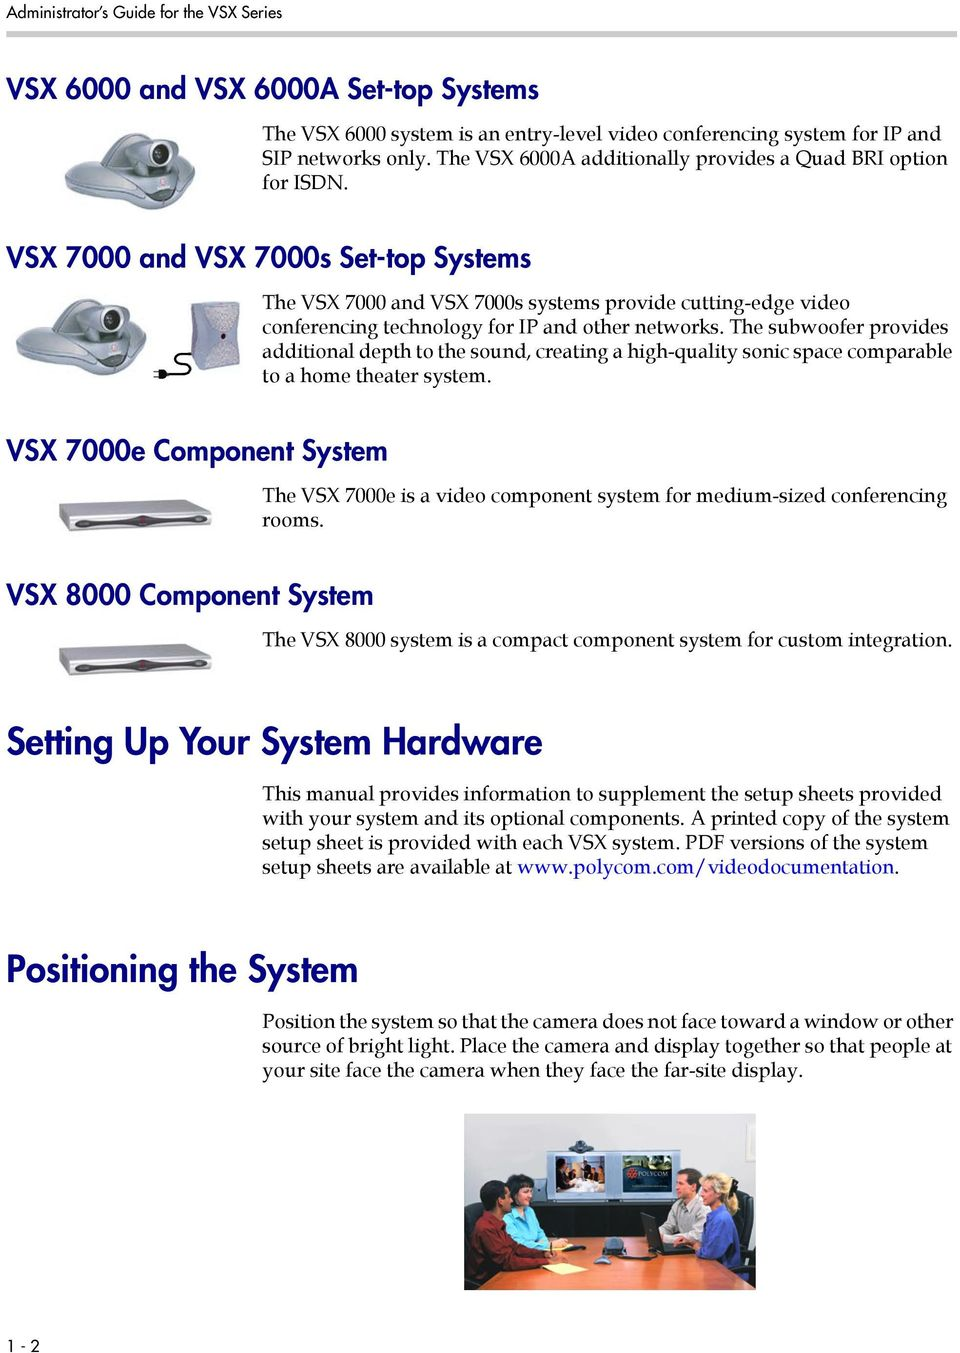 VSX 7000 and VSX 7000s Set-top Systems The VSX 7000 and VSX 7000s systems provide cutting-edge video conferencing technology for IP and other networks.